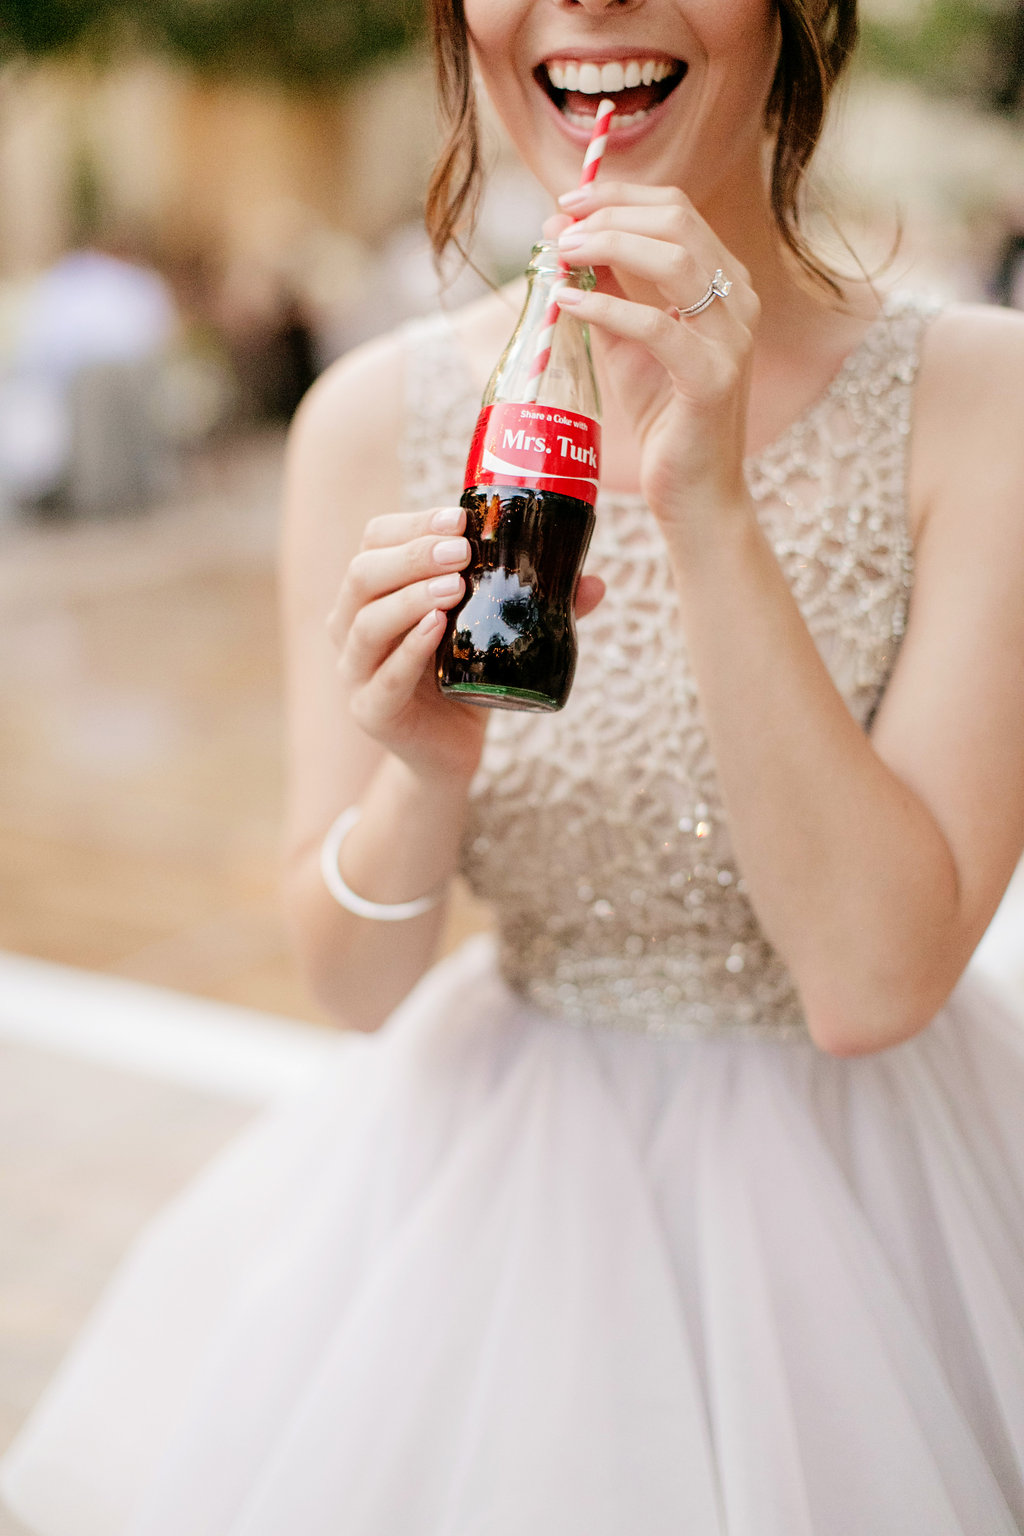 Custom coke bottle escort card at Serra Plaza wedding by Lucky Day Events Co. and Chard Photography